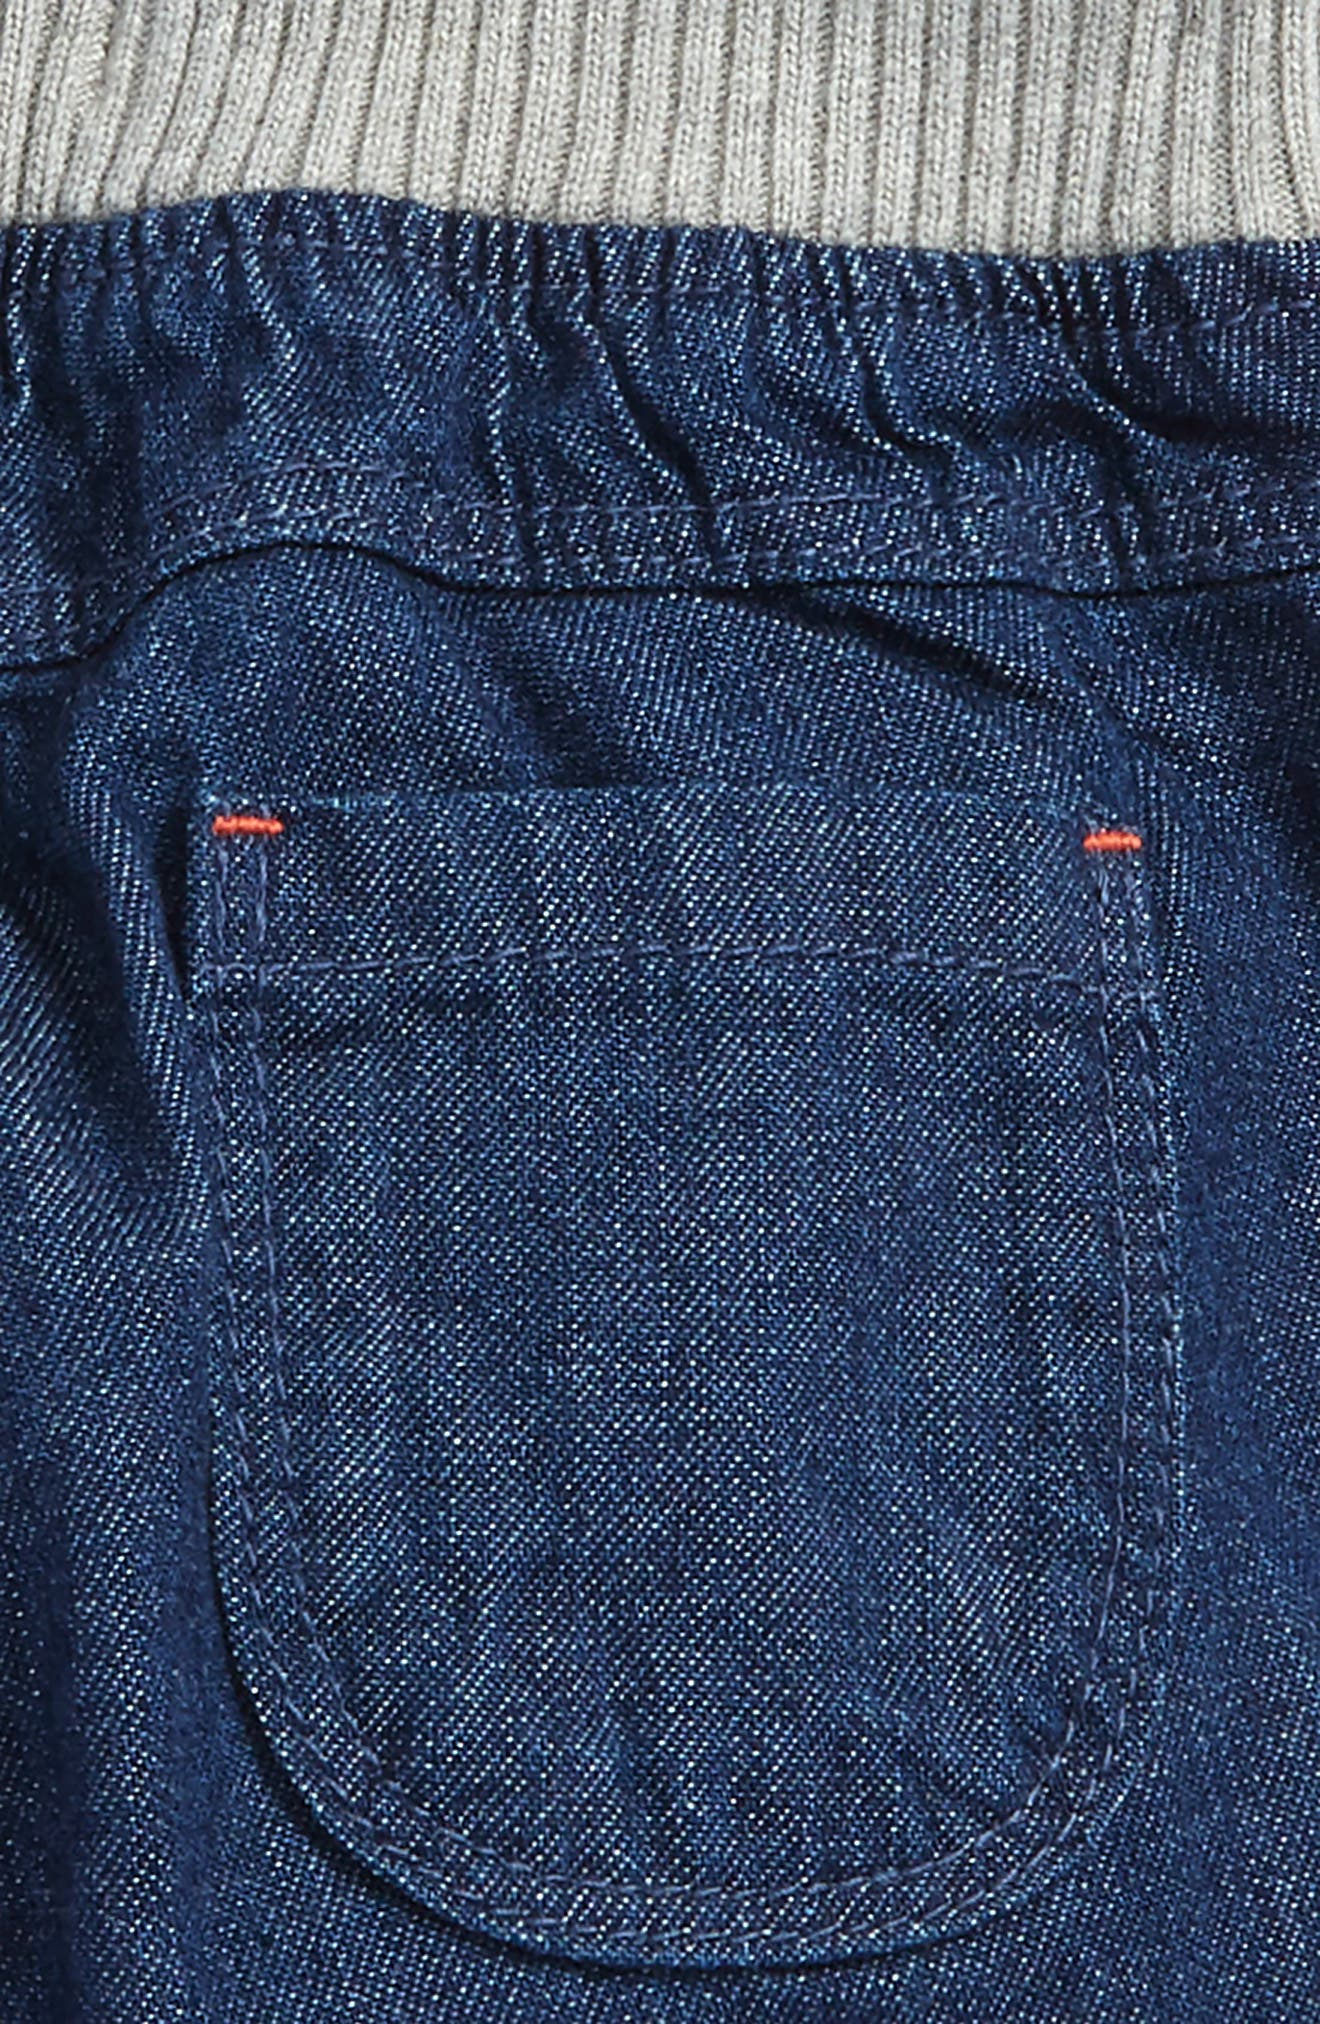 Rib Waist Pants,                             Alternate thumbnail 3, color,                             Mid Denim